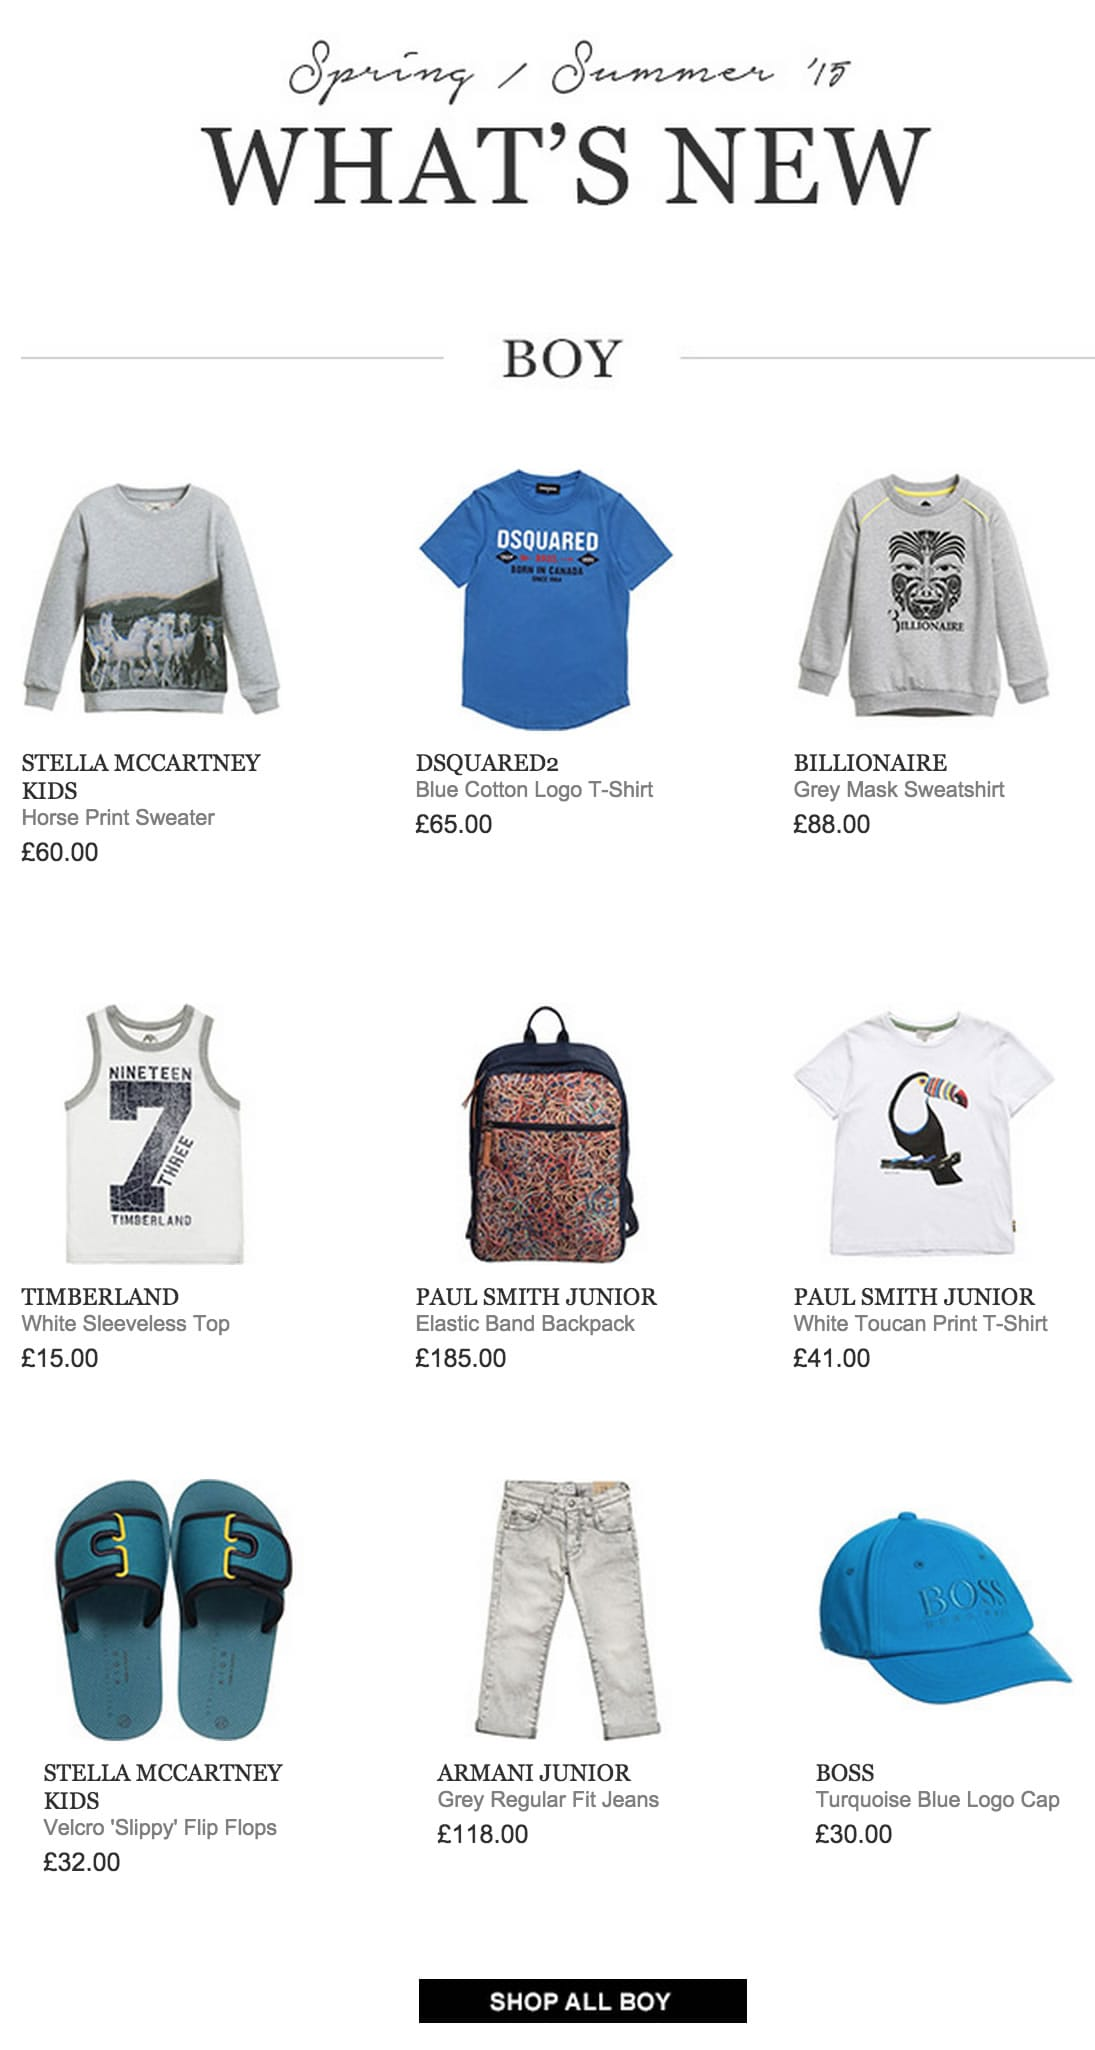 Boys Designers Clothing New Arrivals